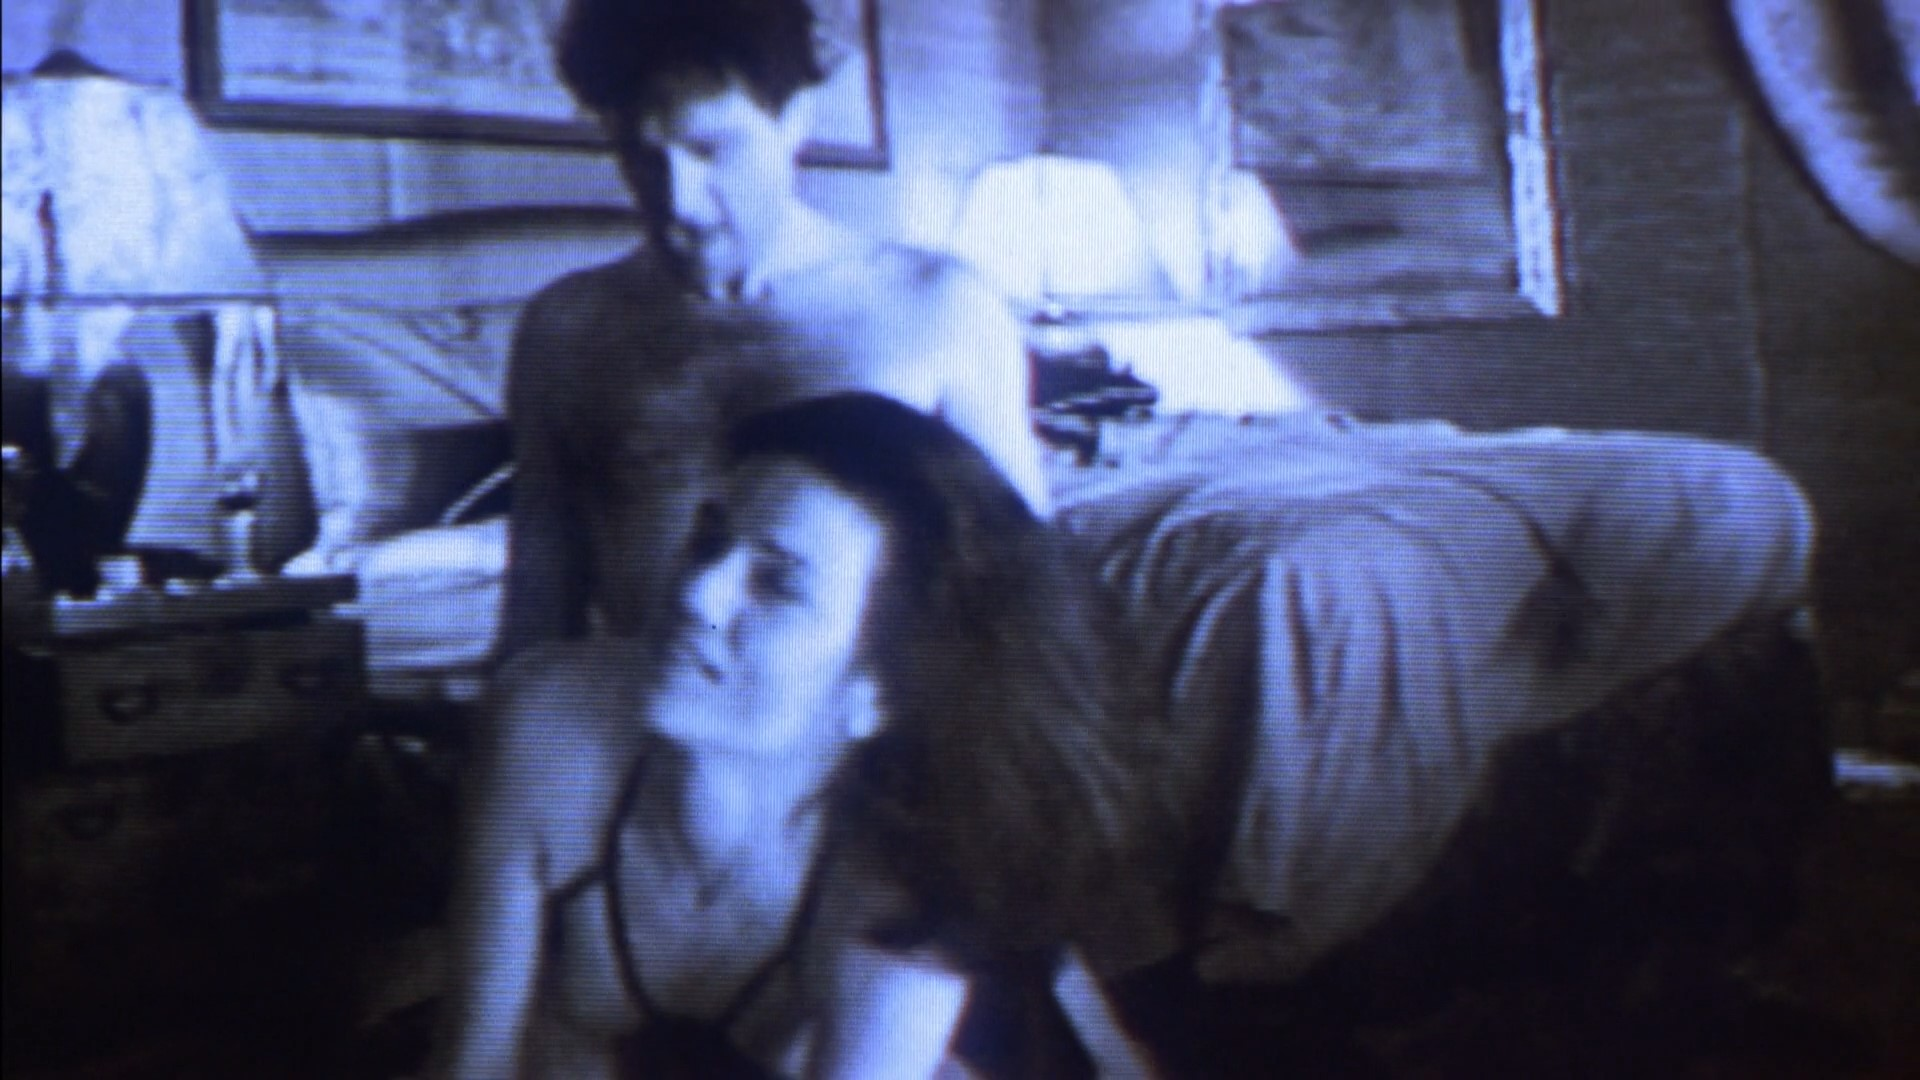 Authoritative Beyond the law linda fiorentino nude